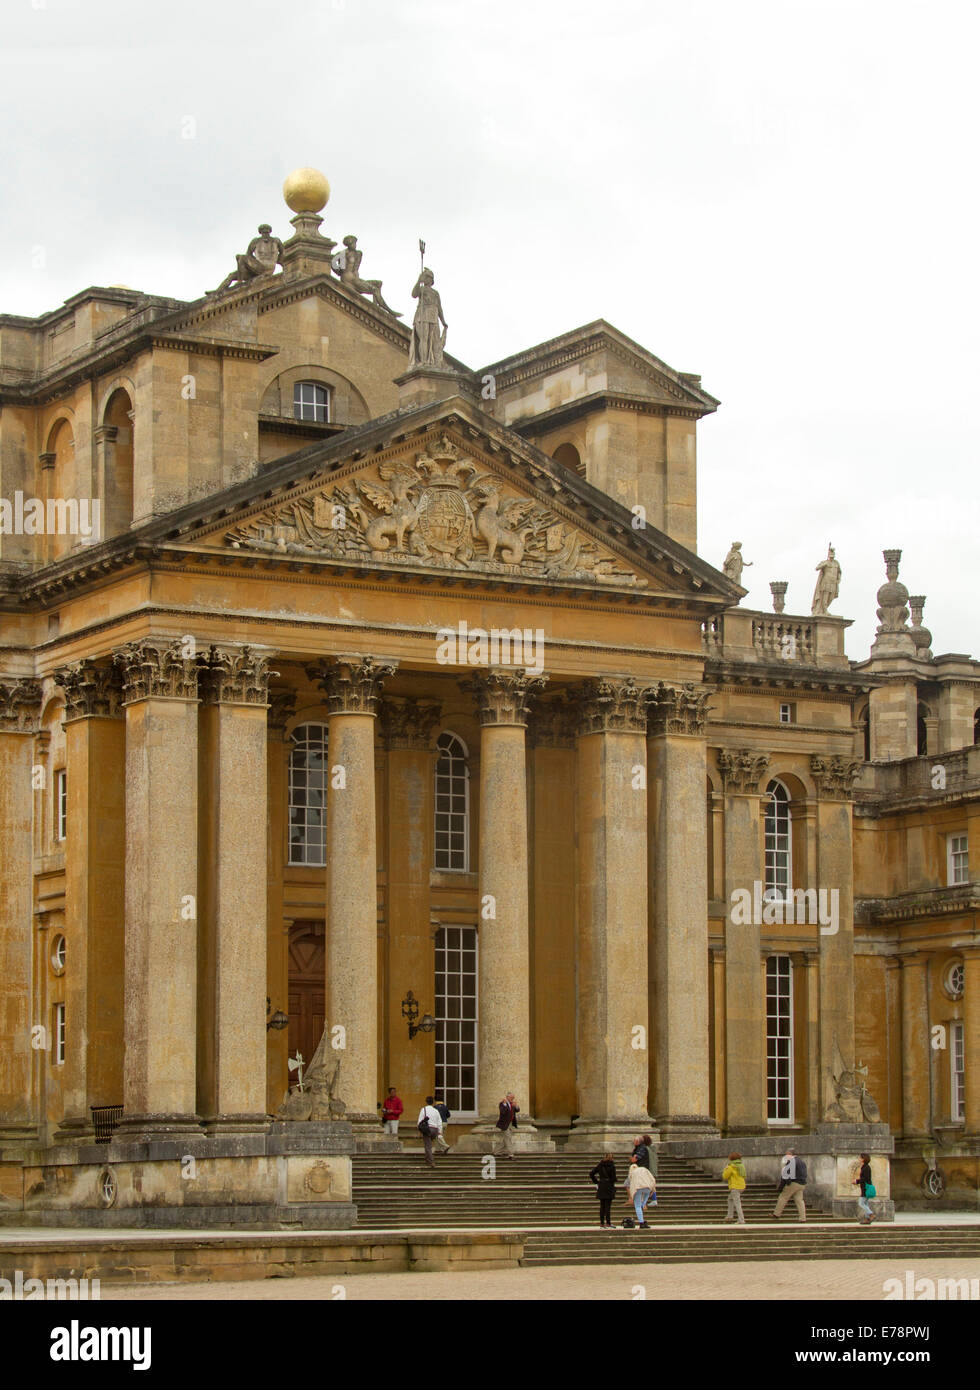 blenheim palace architect